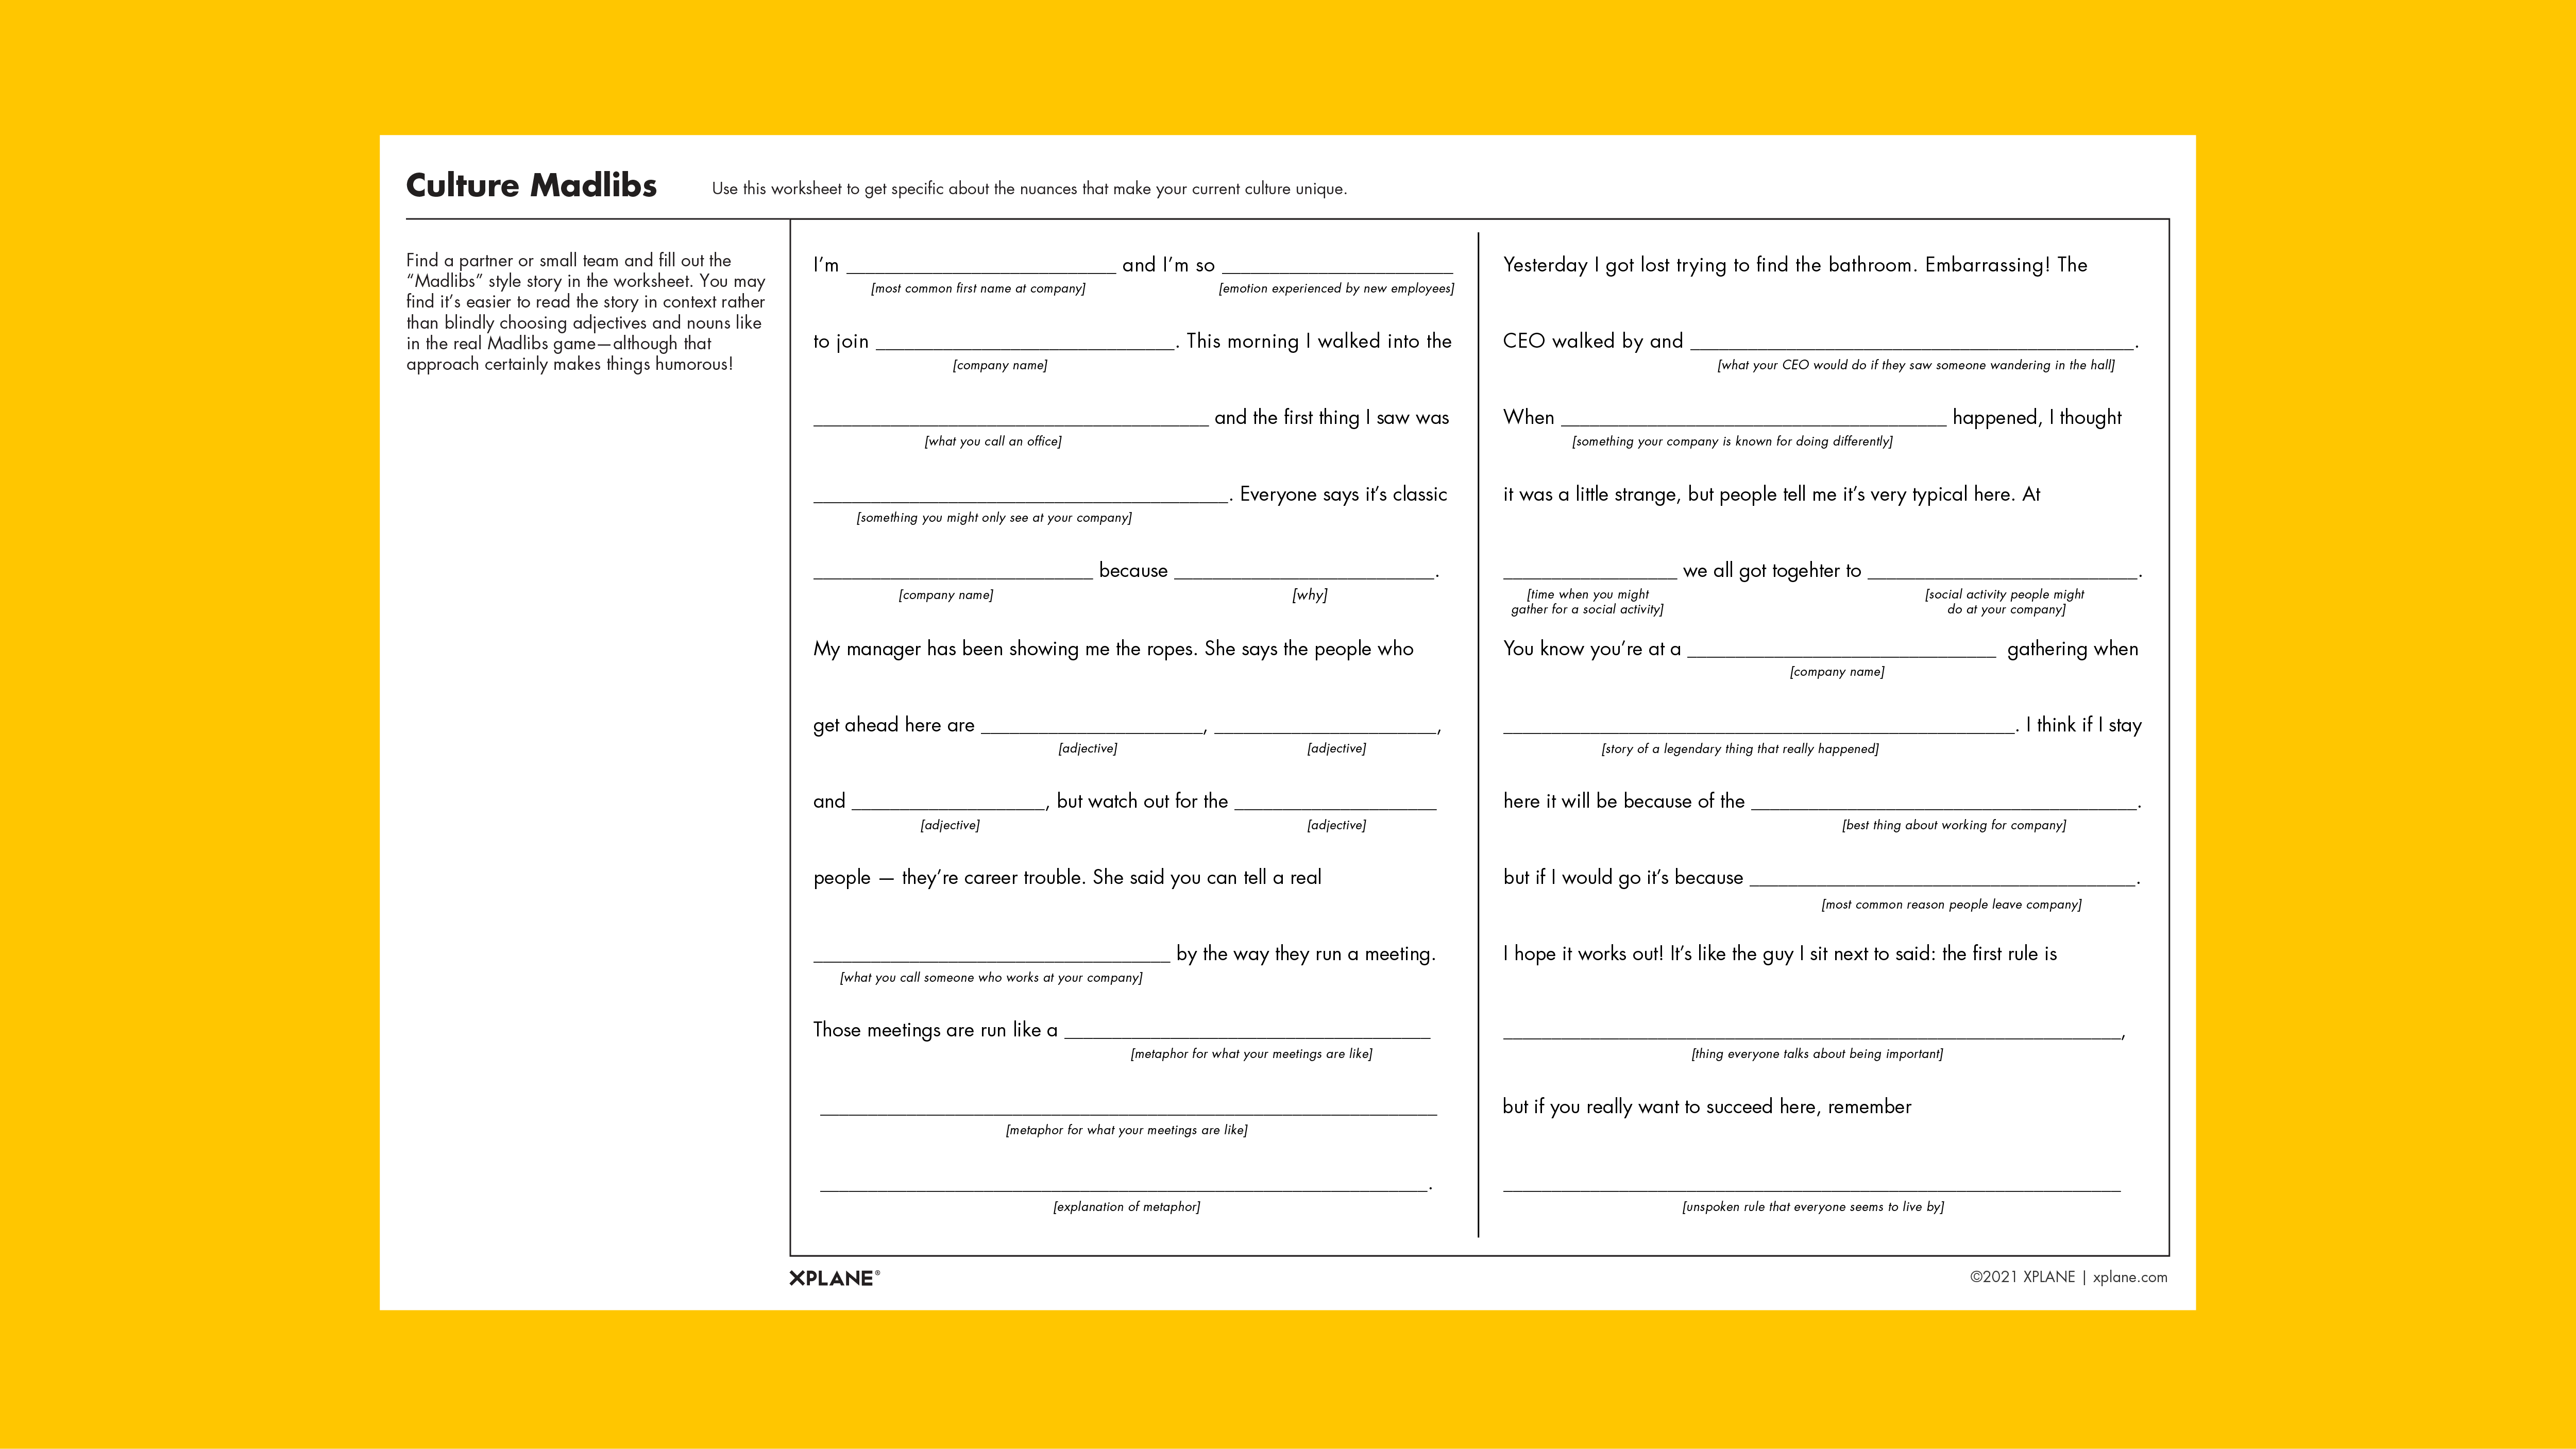 Culture Madlibs worksheet against yellow background